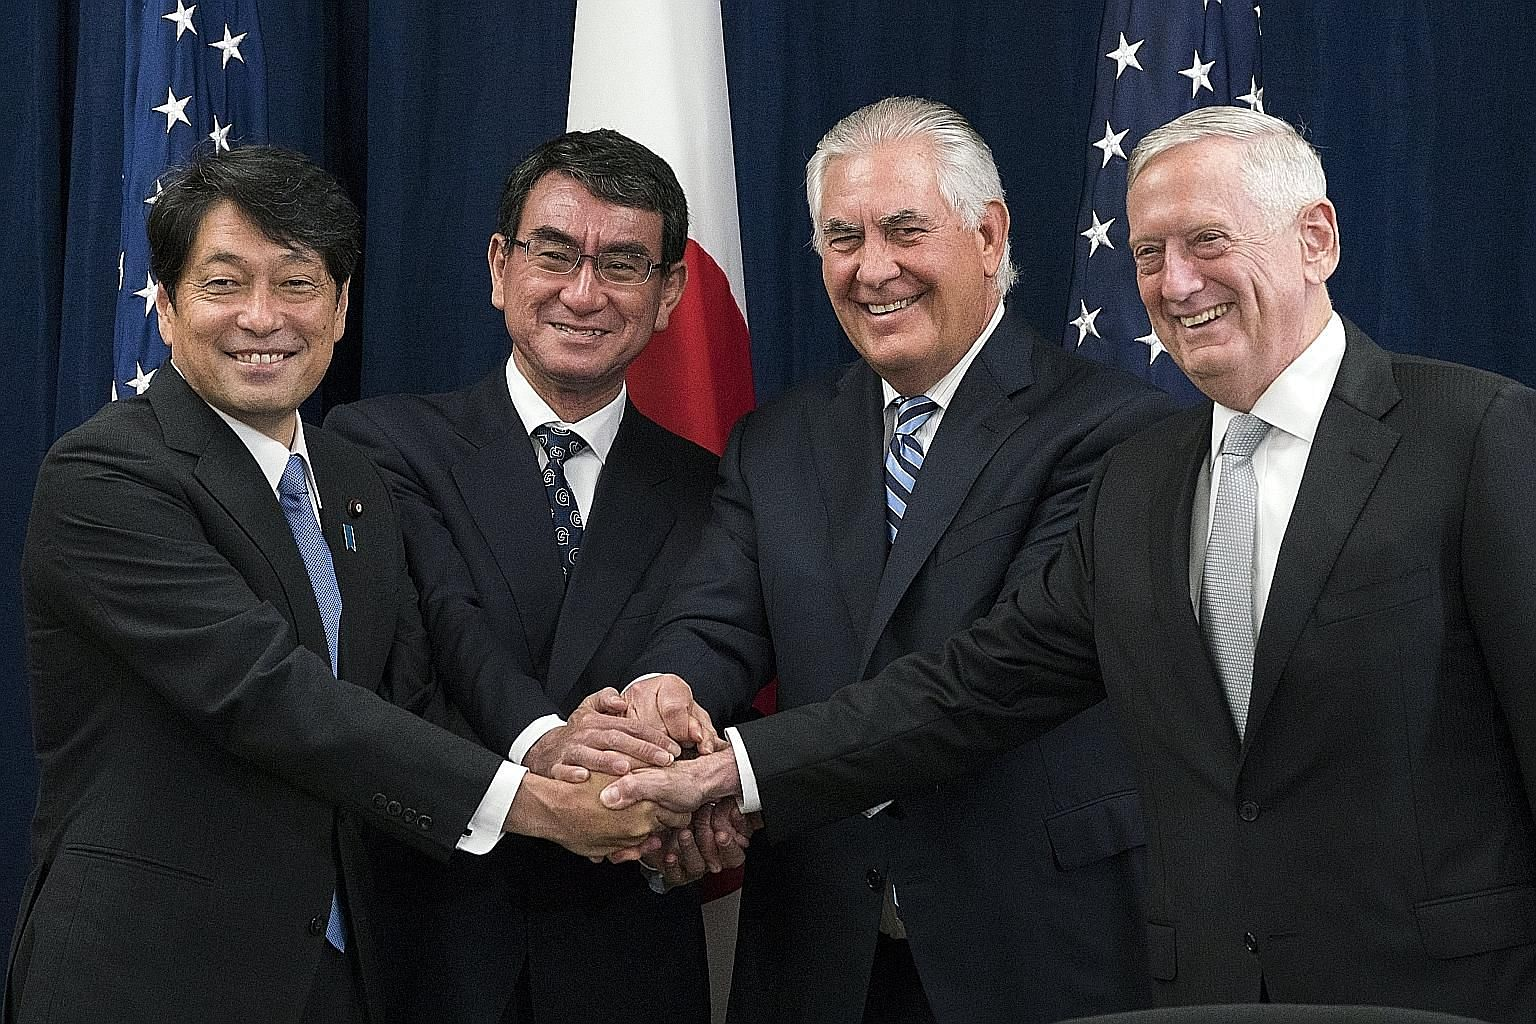 (From left) Japanese Defence Minister Itsunori Onodera, Japanese Foreign Minister Taro Kono, US Secretary of State Rex Tillerson and US Defence Secretary James Mattis in Washington.